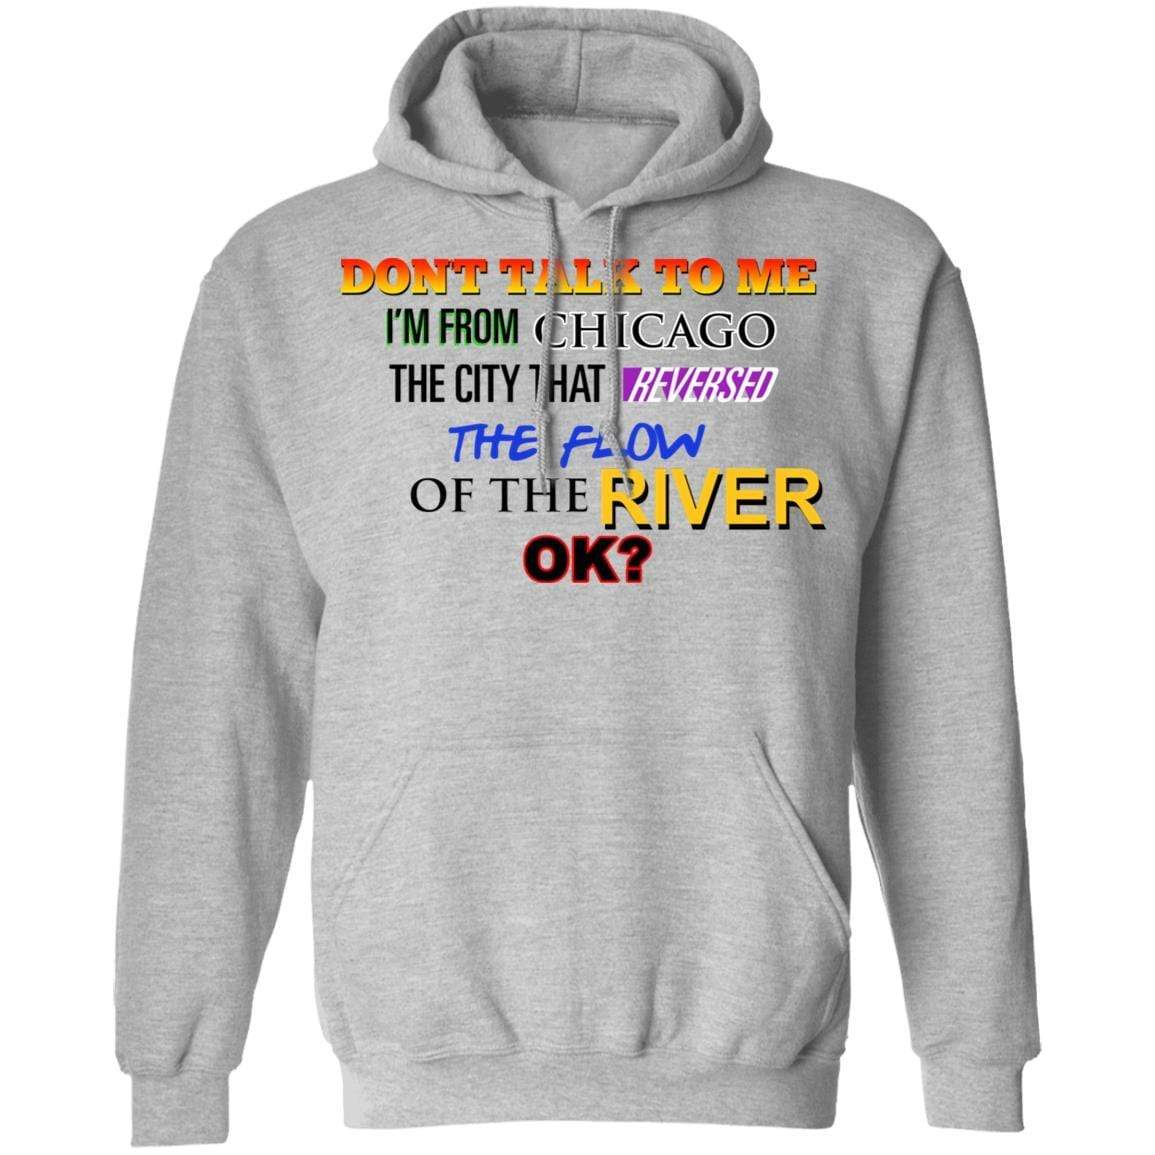 Don't Talk To Me I'm From Chicago The City That Reversed The Flow Of The River T-Shirts, Hoodies 541-4741-90248039-23111 - Tee Ript